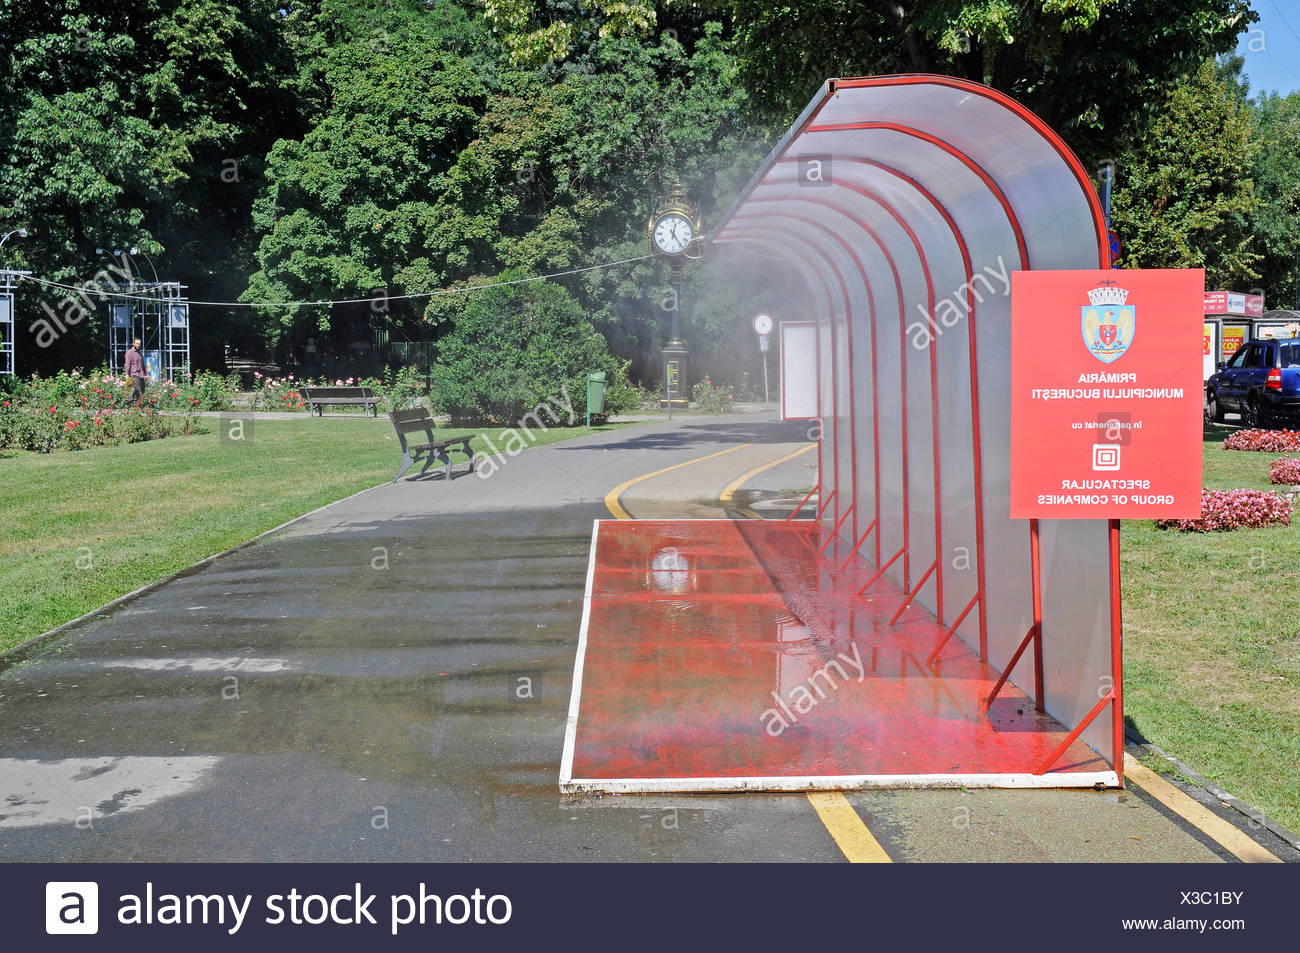 Public water sprinkling system, hot weather, water, cooling, summer, Bucharest, Romania, Eastern Europe, Europe, PublicGround - Stock Image